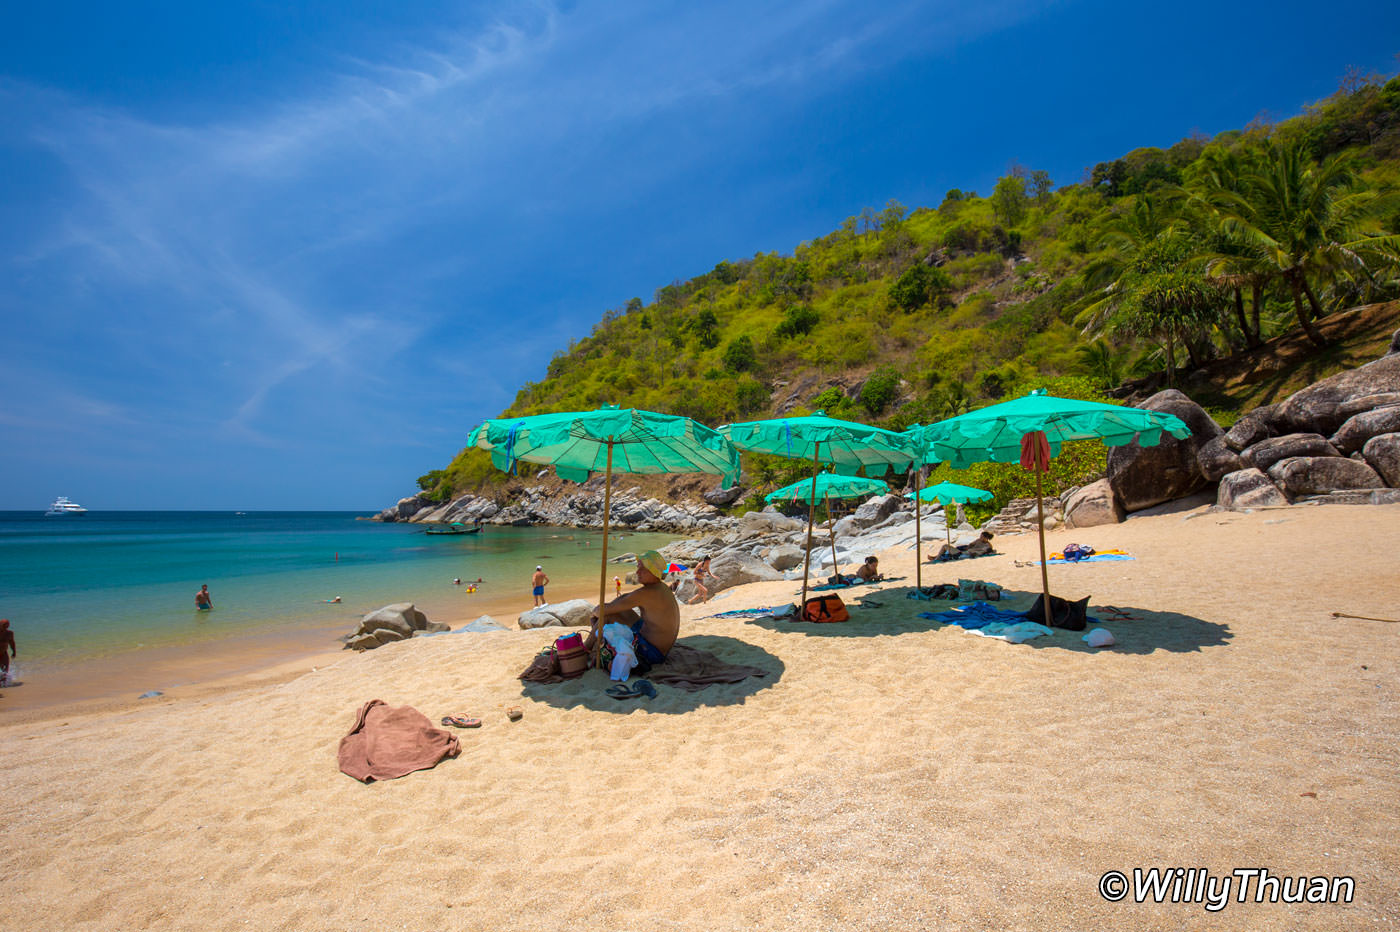 Nui Beach in Phuket